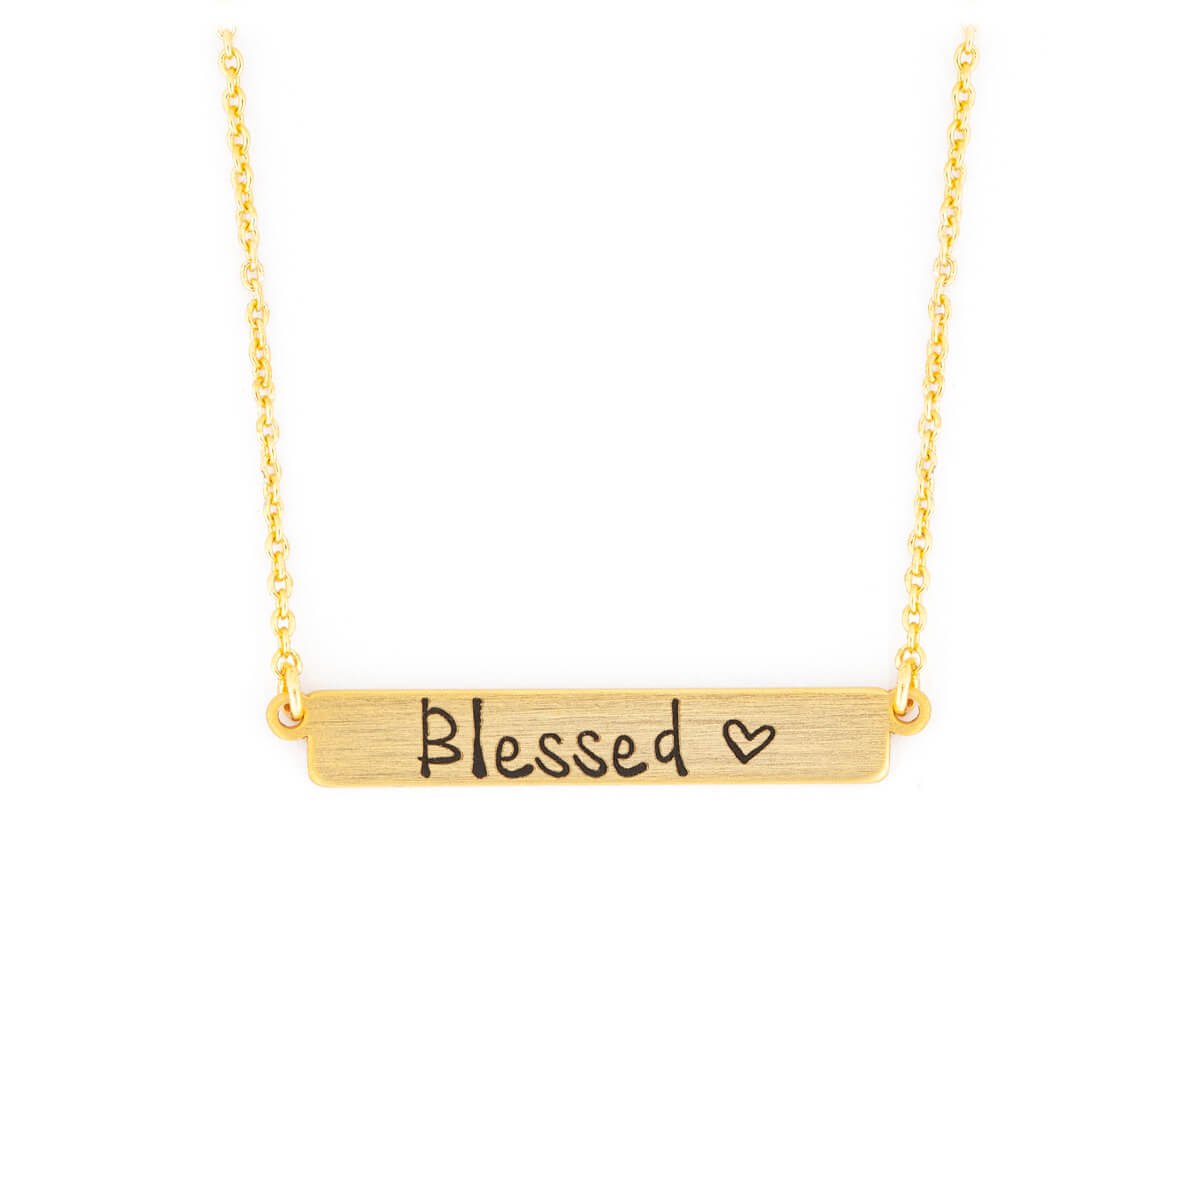 Blessed - Kette|Länge ca. 40-44 cm, Messing mit Goldauflage